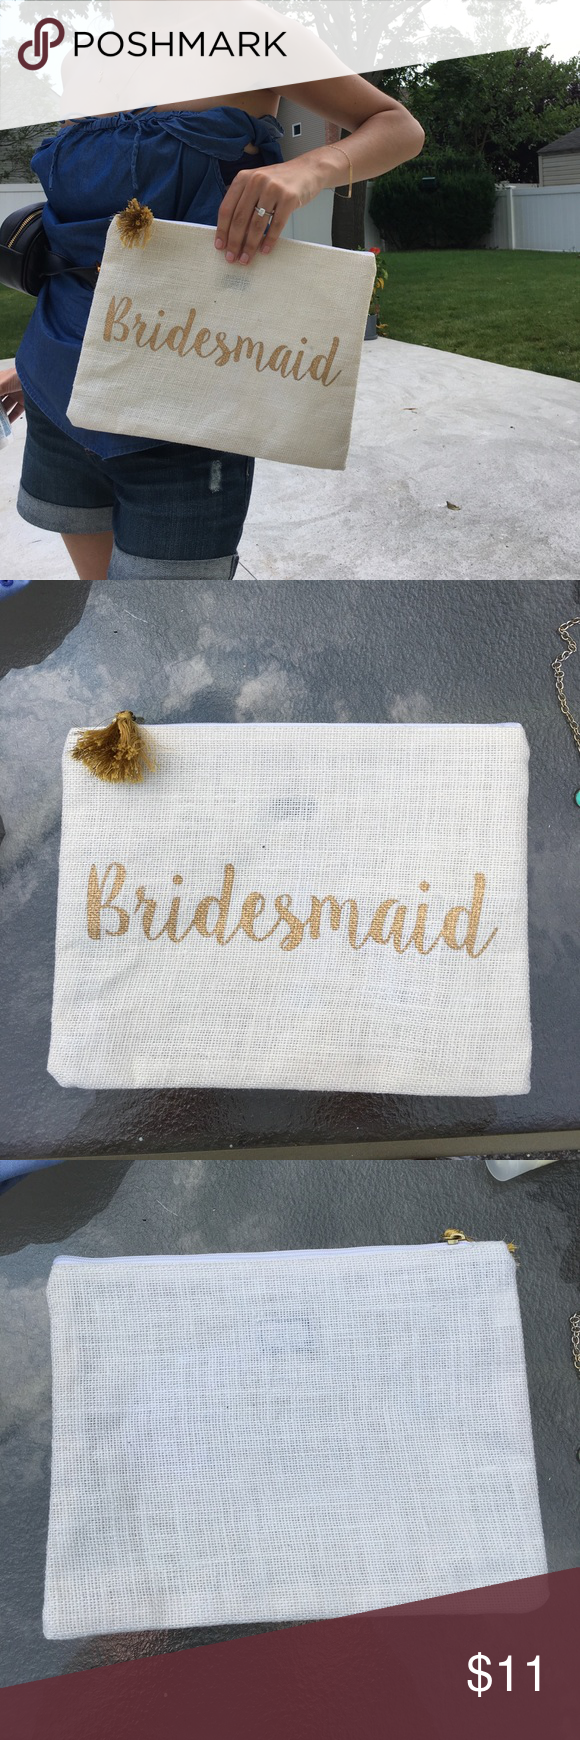 """Oversized CLUTCH """"bridesmaid"""" off white jute Zipper closure with gold tassel gold font """"Bridesmaid"""" oversized clutch by mud pie Bags Clutches & Wristlets"""